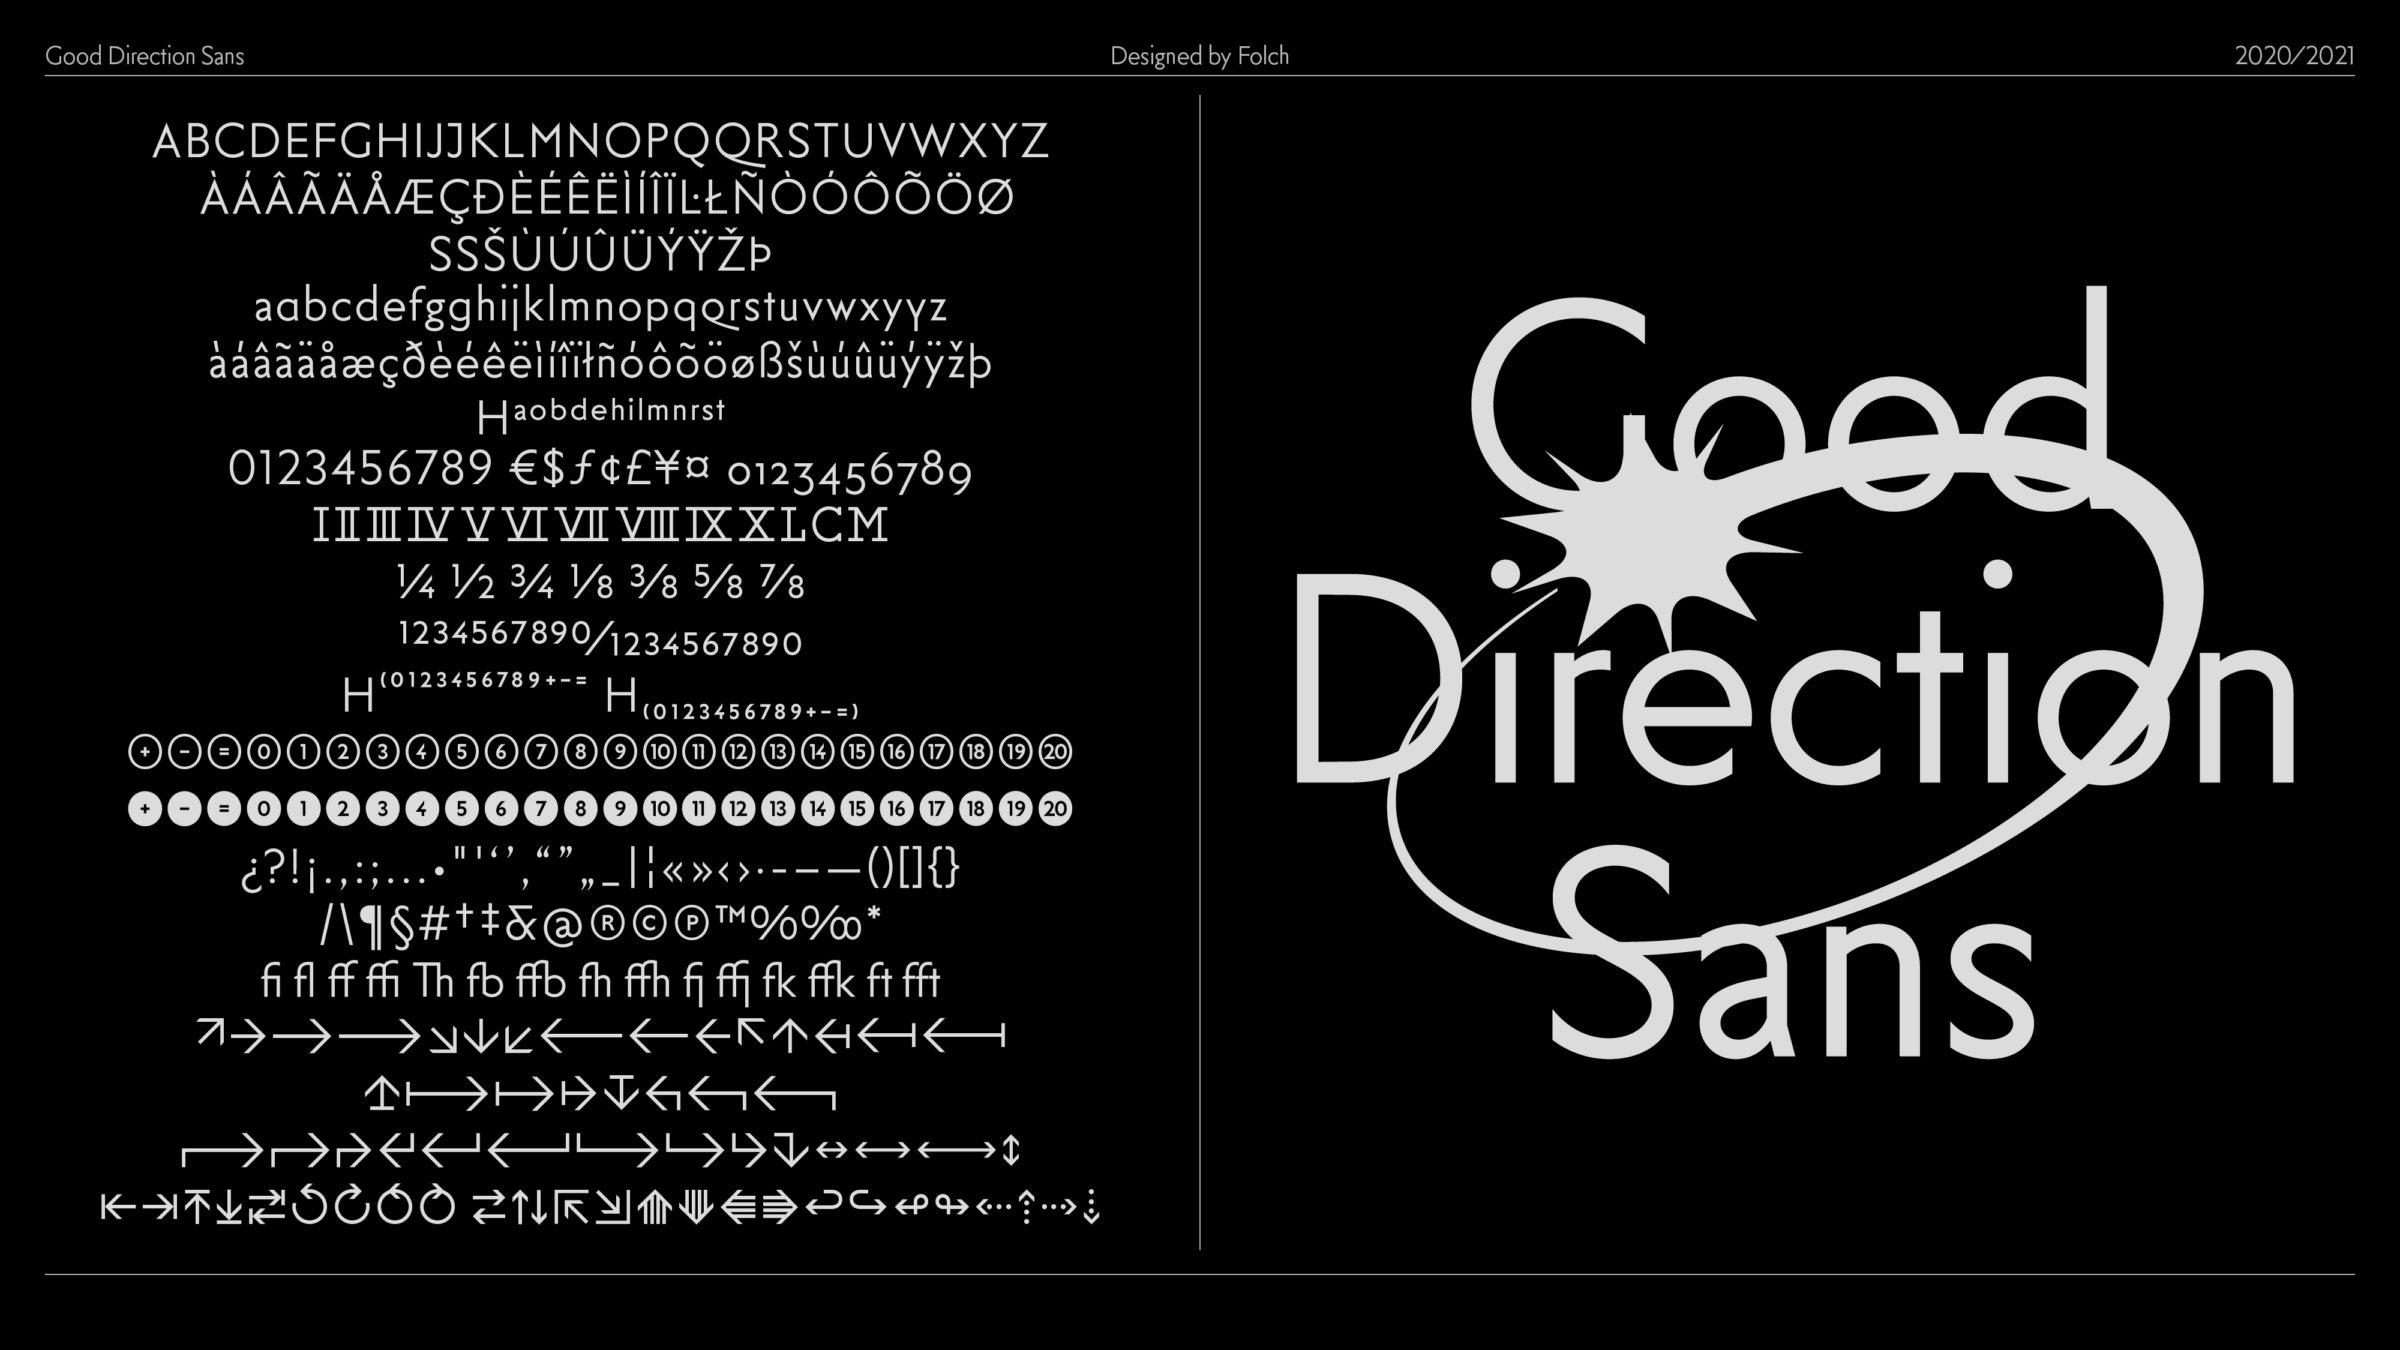 Good Direction Sans | FOLCH